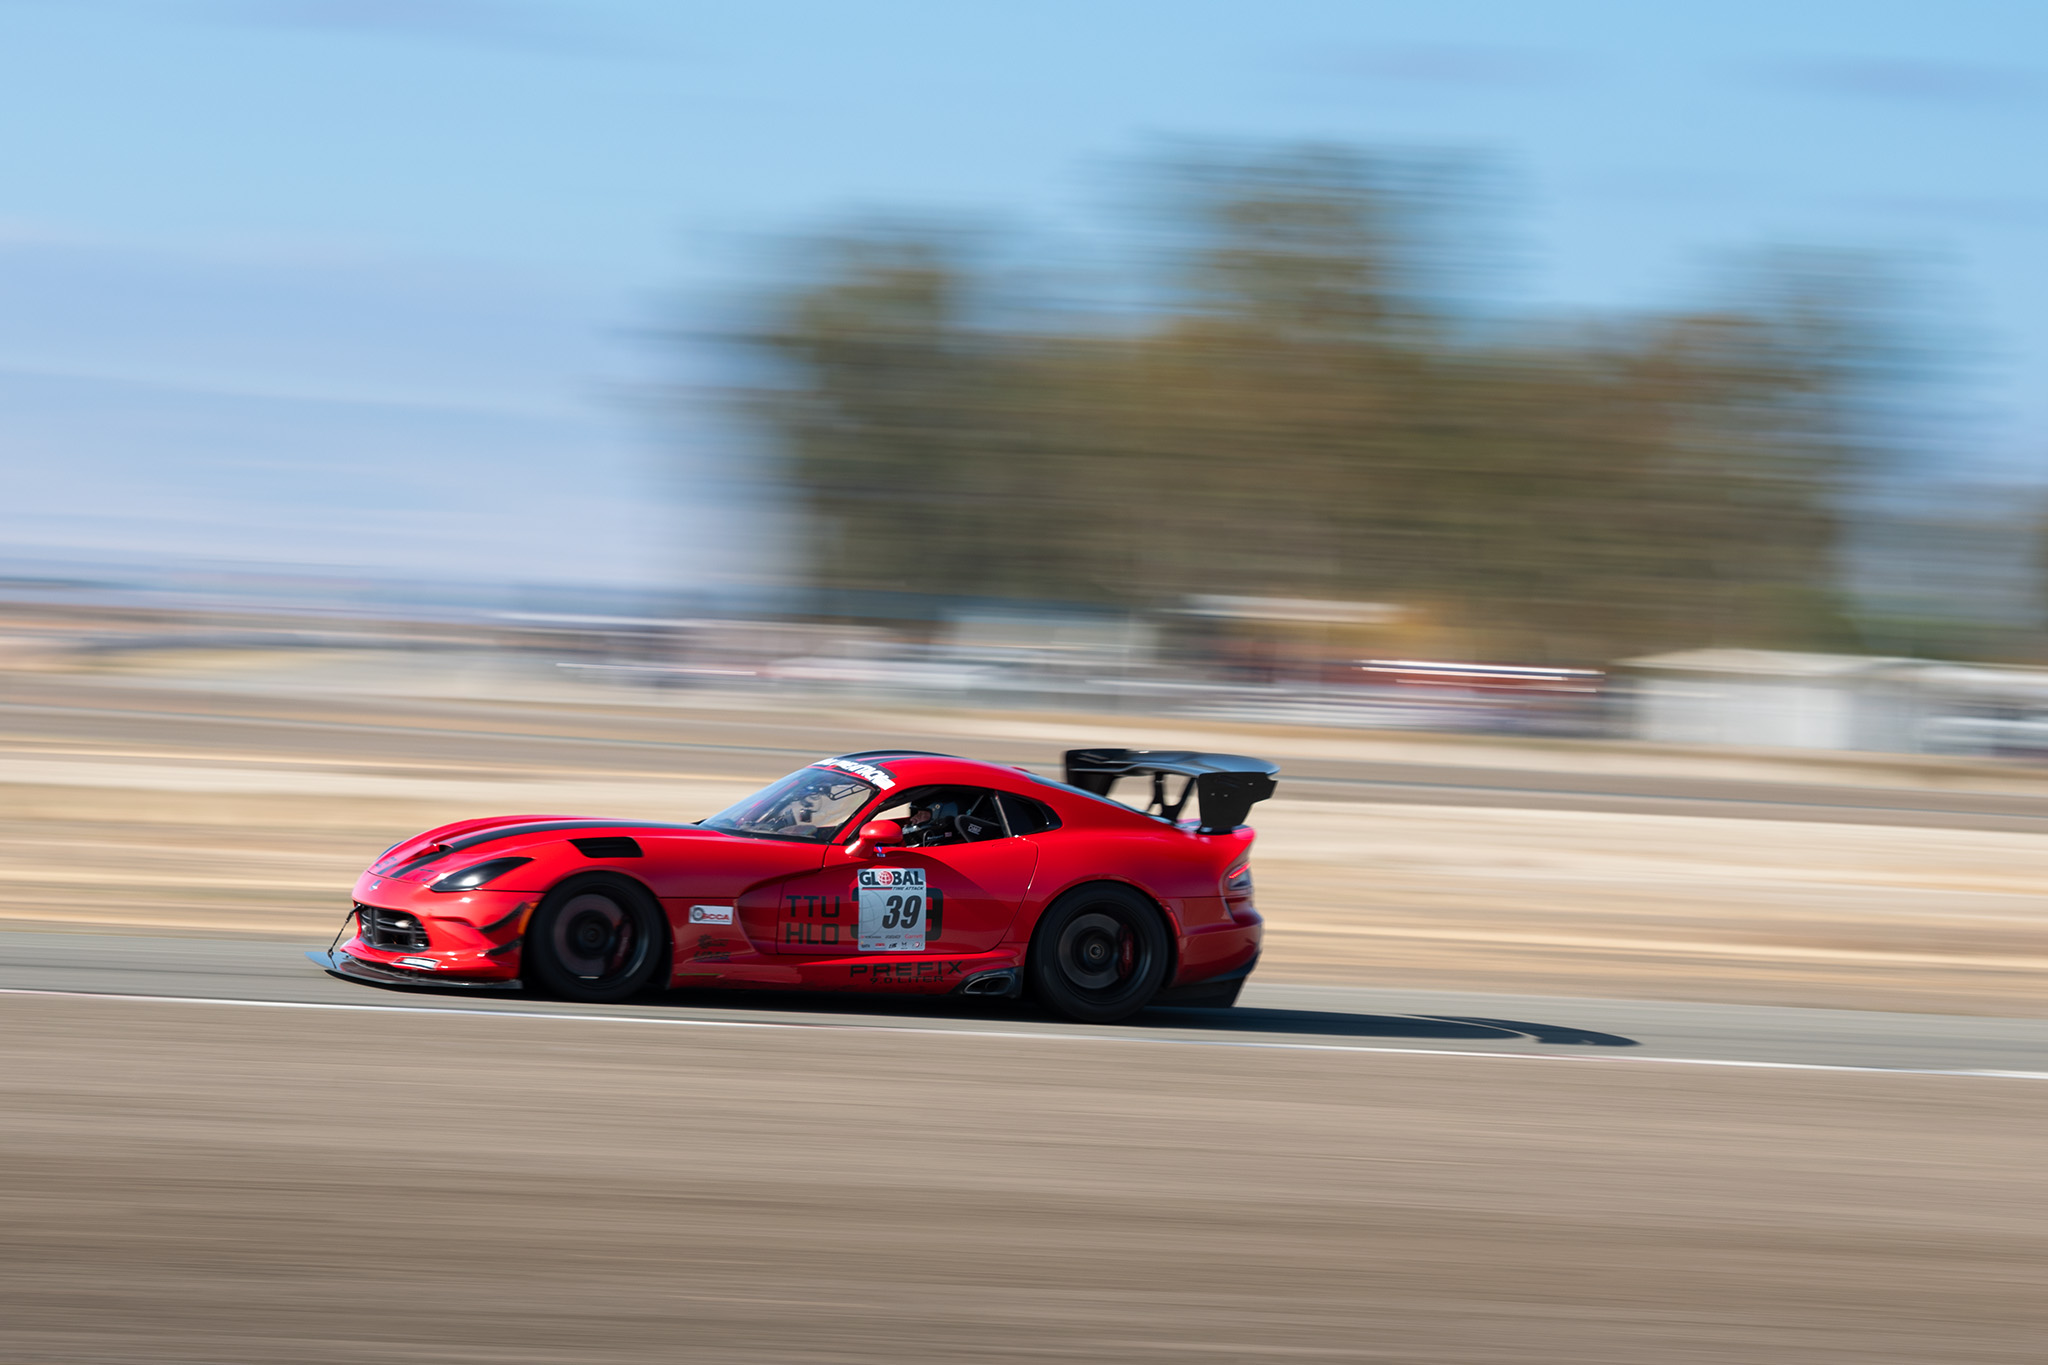 Cable Rosenberg and his Dodge Viper at Global Time Attack finals, motorsports photography by Luke Munnell